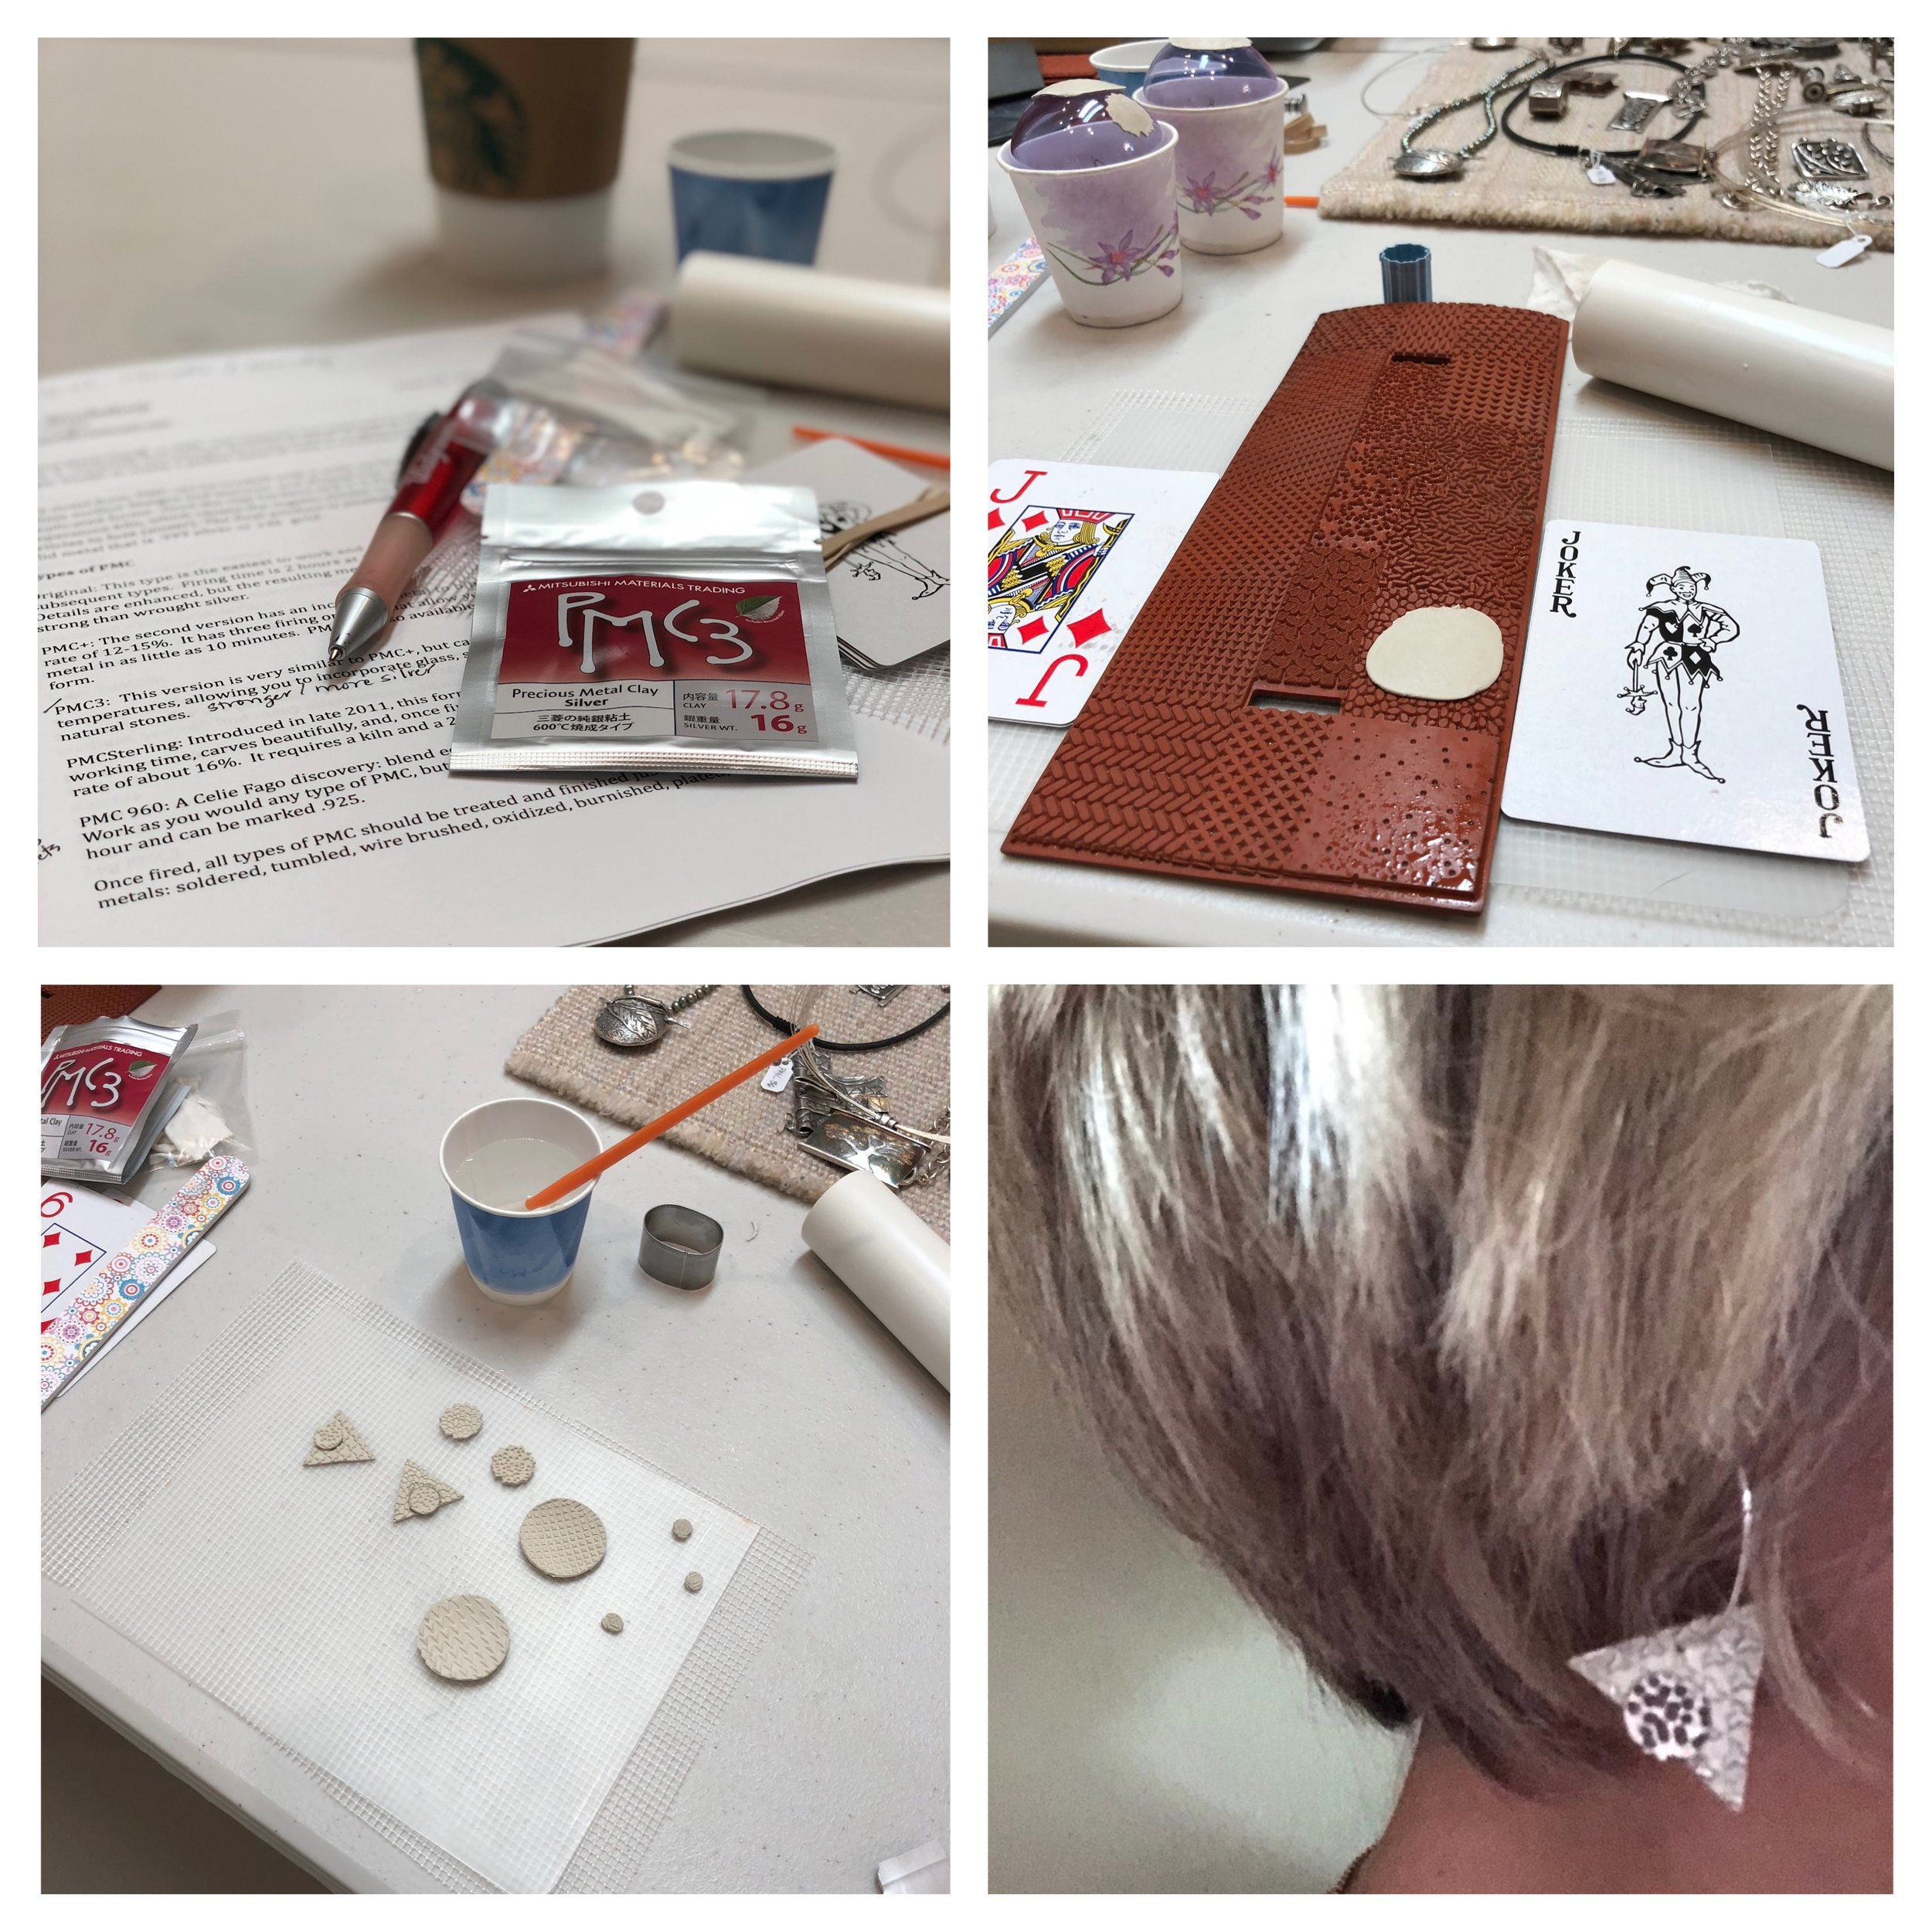 I gifted myself another clay-class experience recently. In this workshop, we used a material called PMC (precious metal clay) to create silver (yes real silver) jewelry. Boy was it fun! Sometimes the best gifts are the ones we give ourselves!